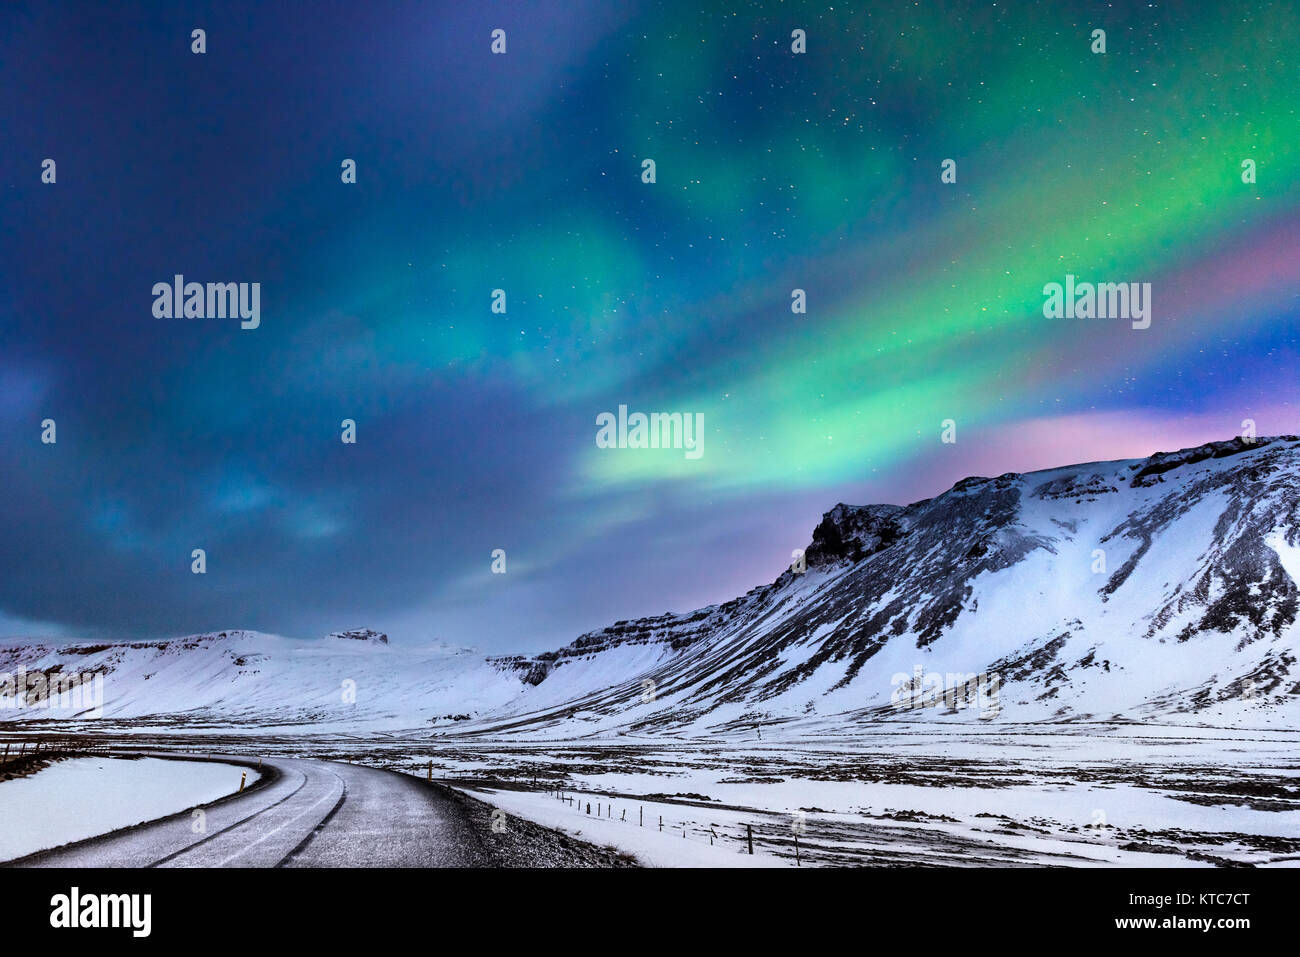 Beautiful landscape of the northern lights over hight mountains covered with snow,  Aurora Borealis, wonderful phenomena - Stock Image